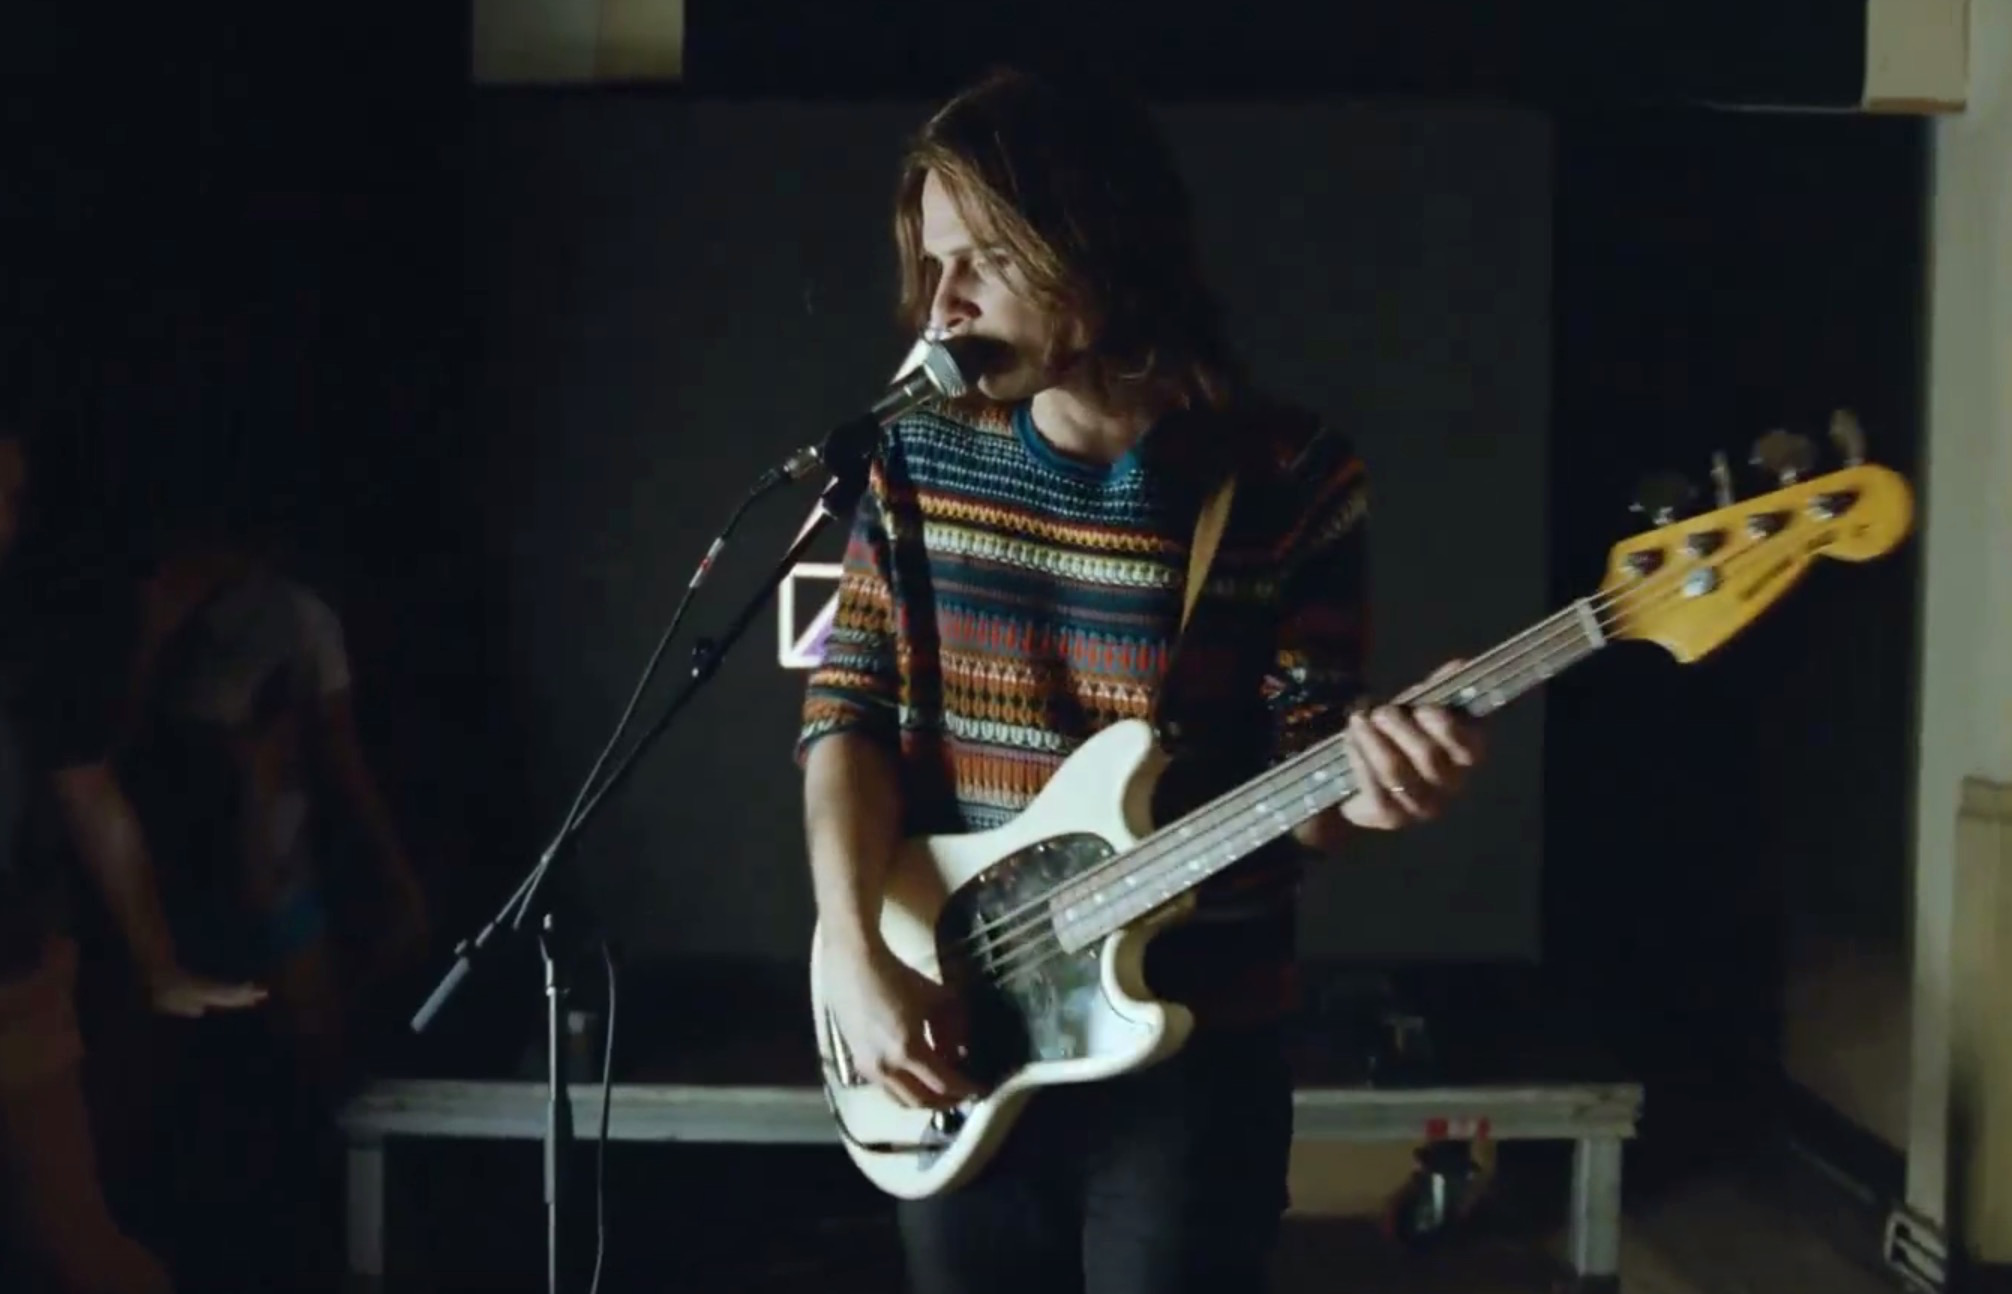 Phoenix - Trying To Be Cool (Video) (2013) 06